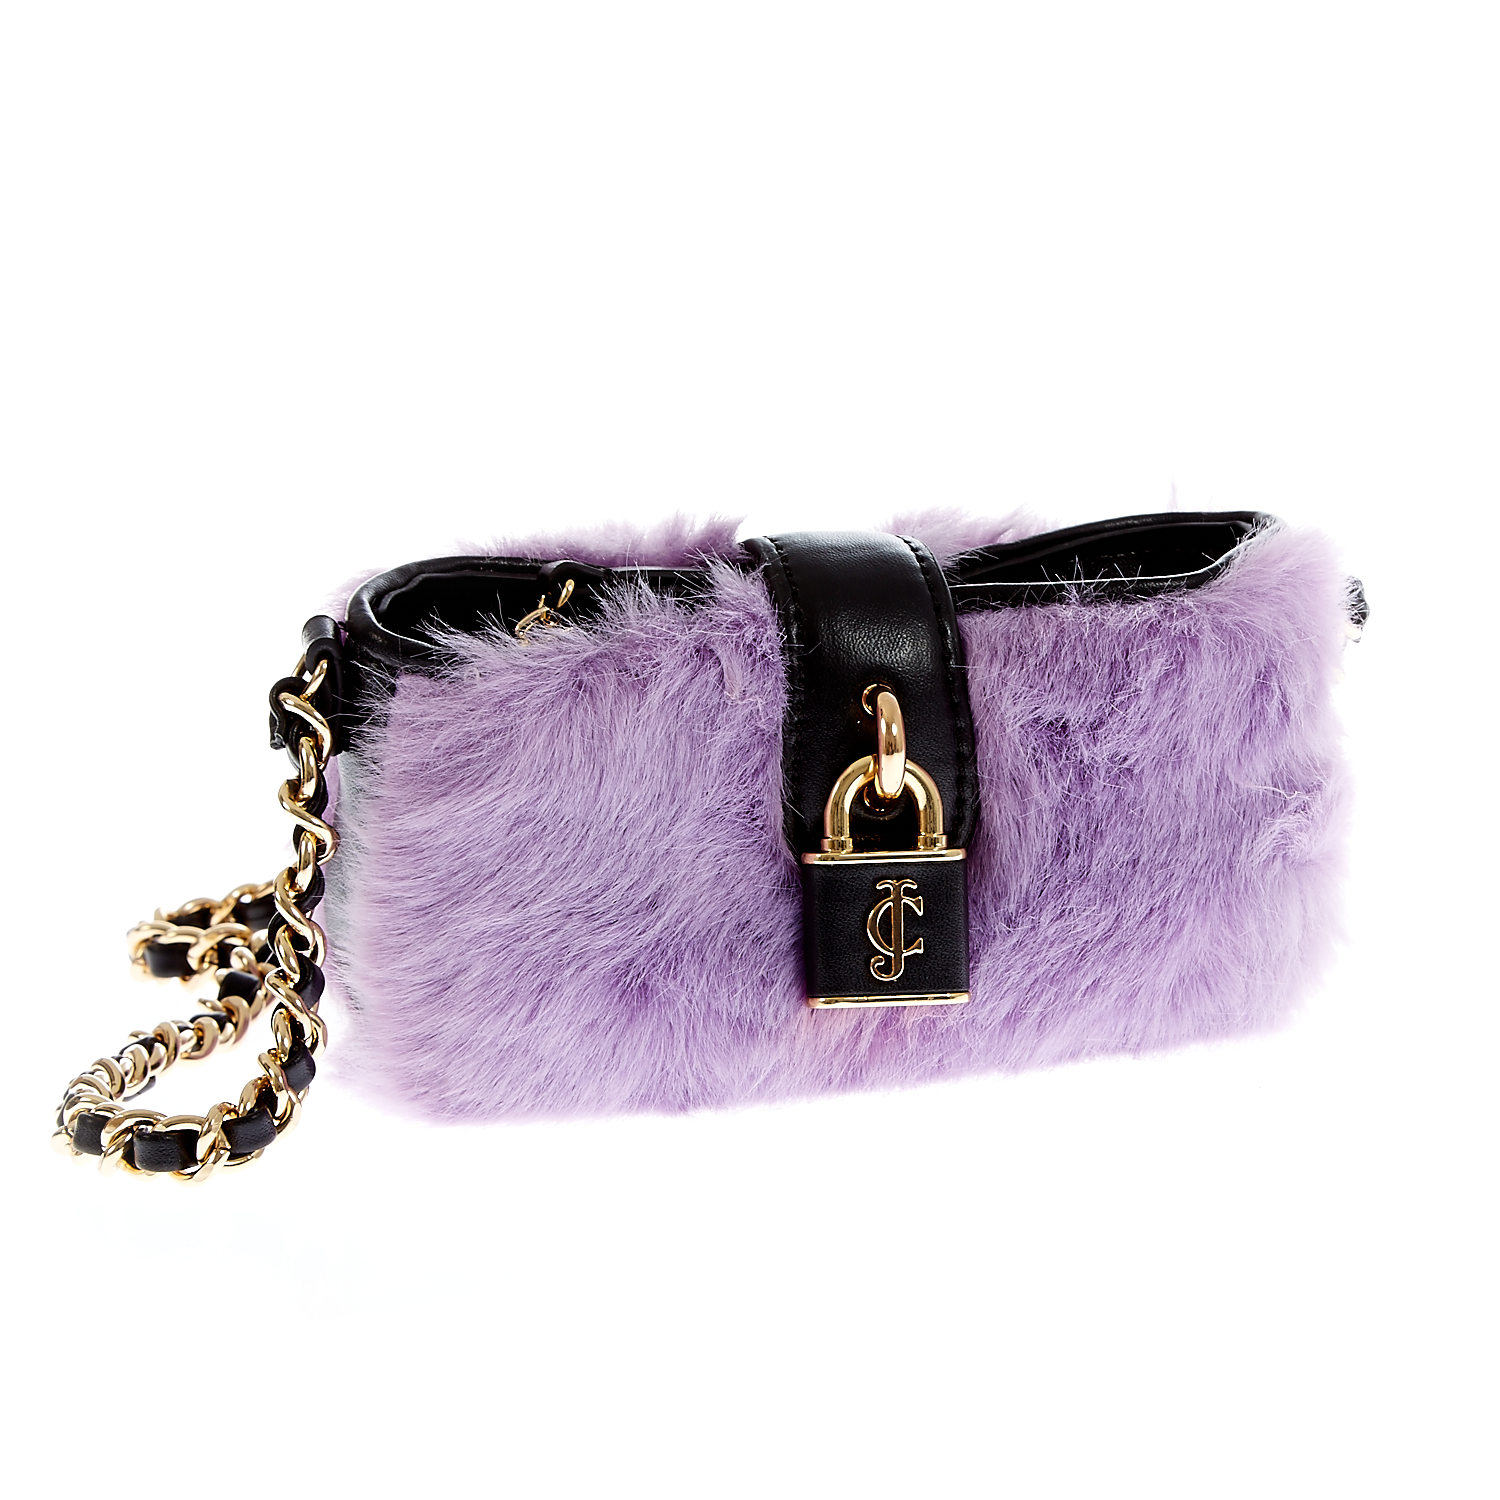 JUICY COUTURE – Γυναικεία τσάντα Juicy Couture μωβ 1409506.0-00D1